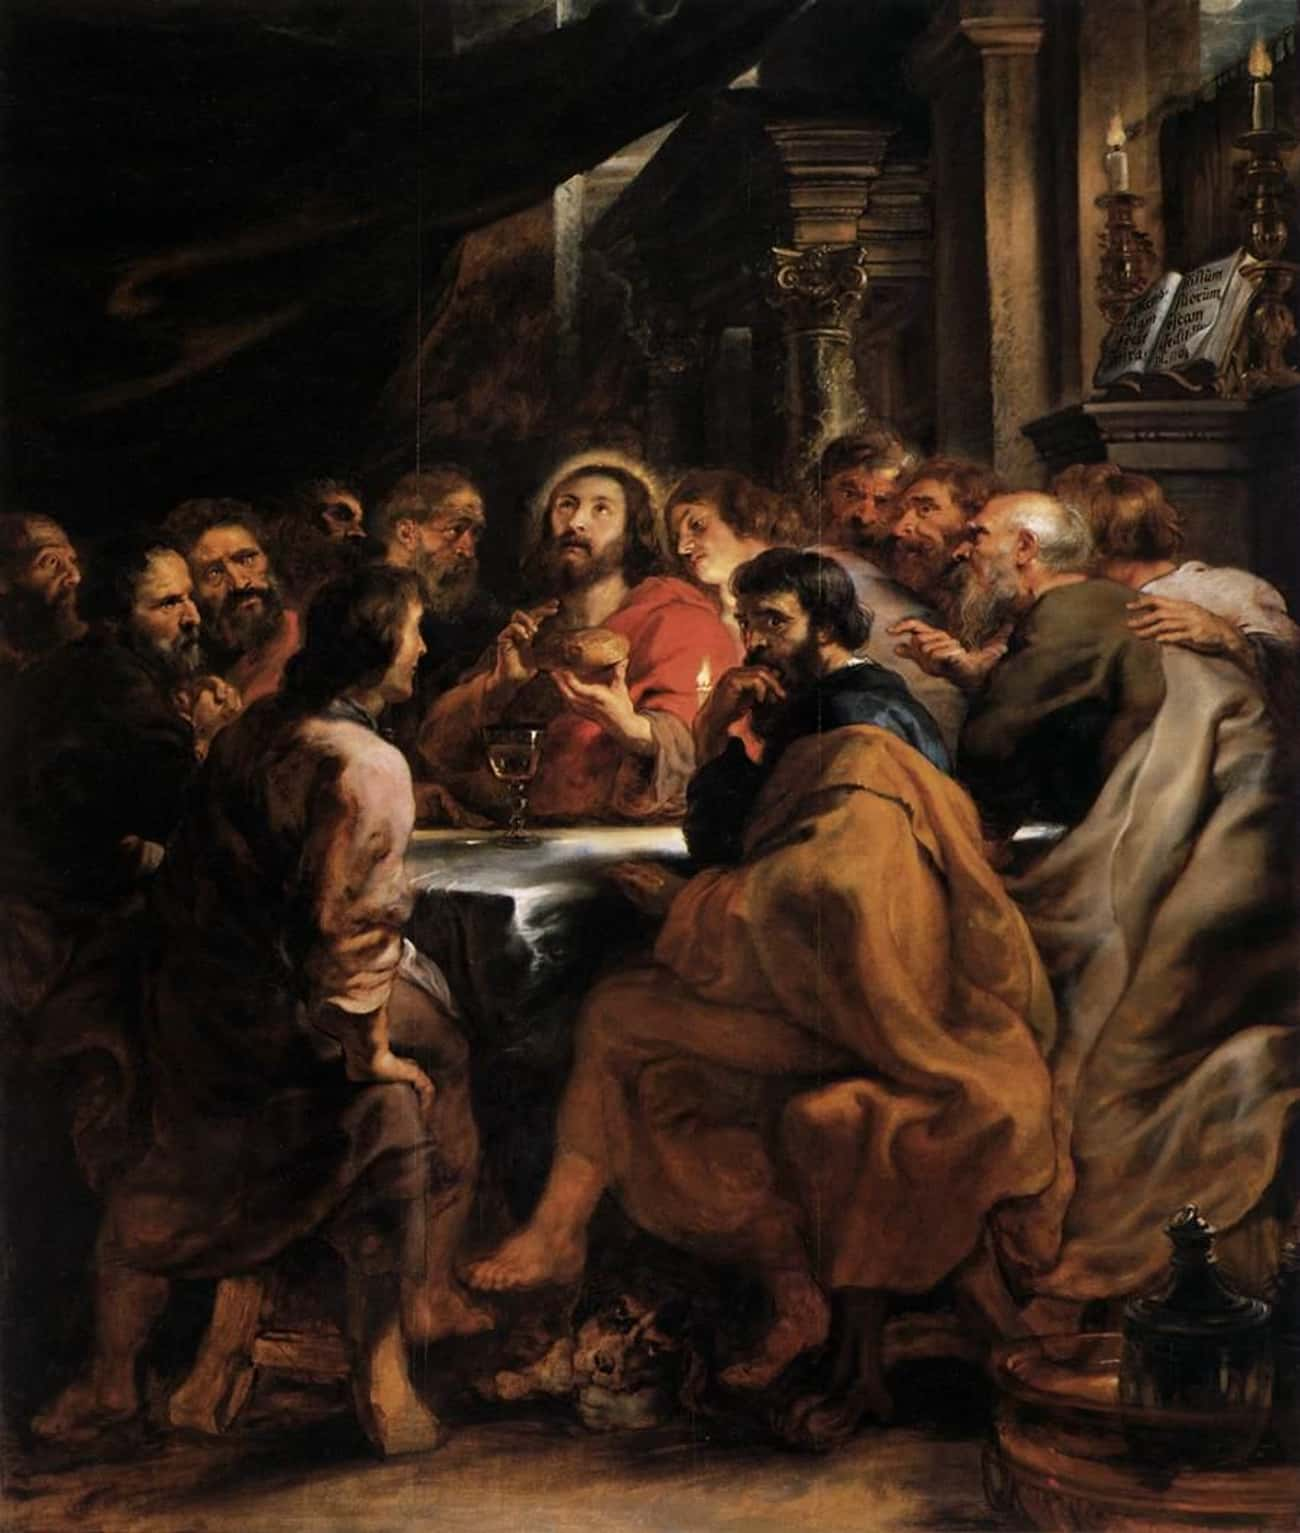 Rubens's Last Supper